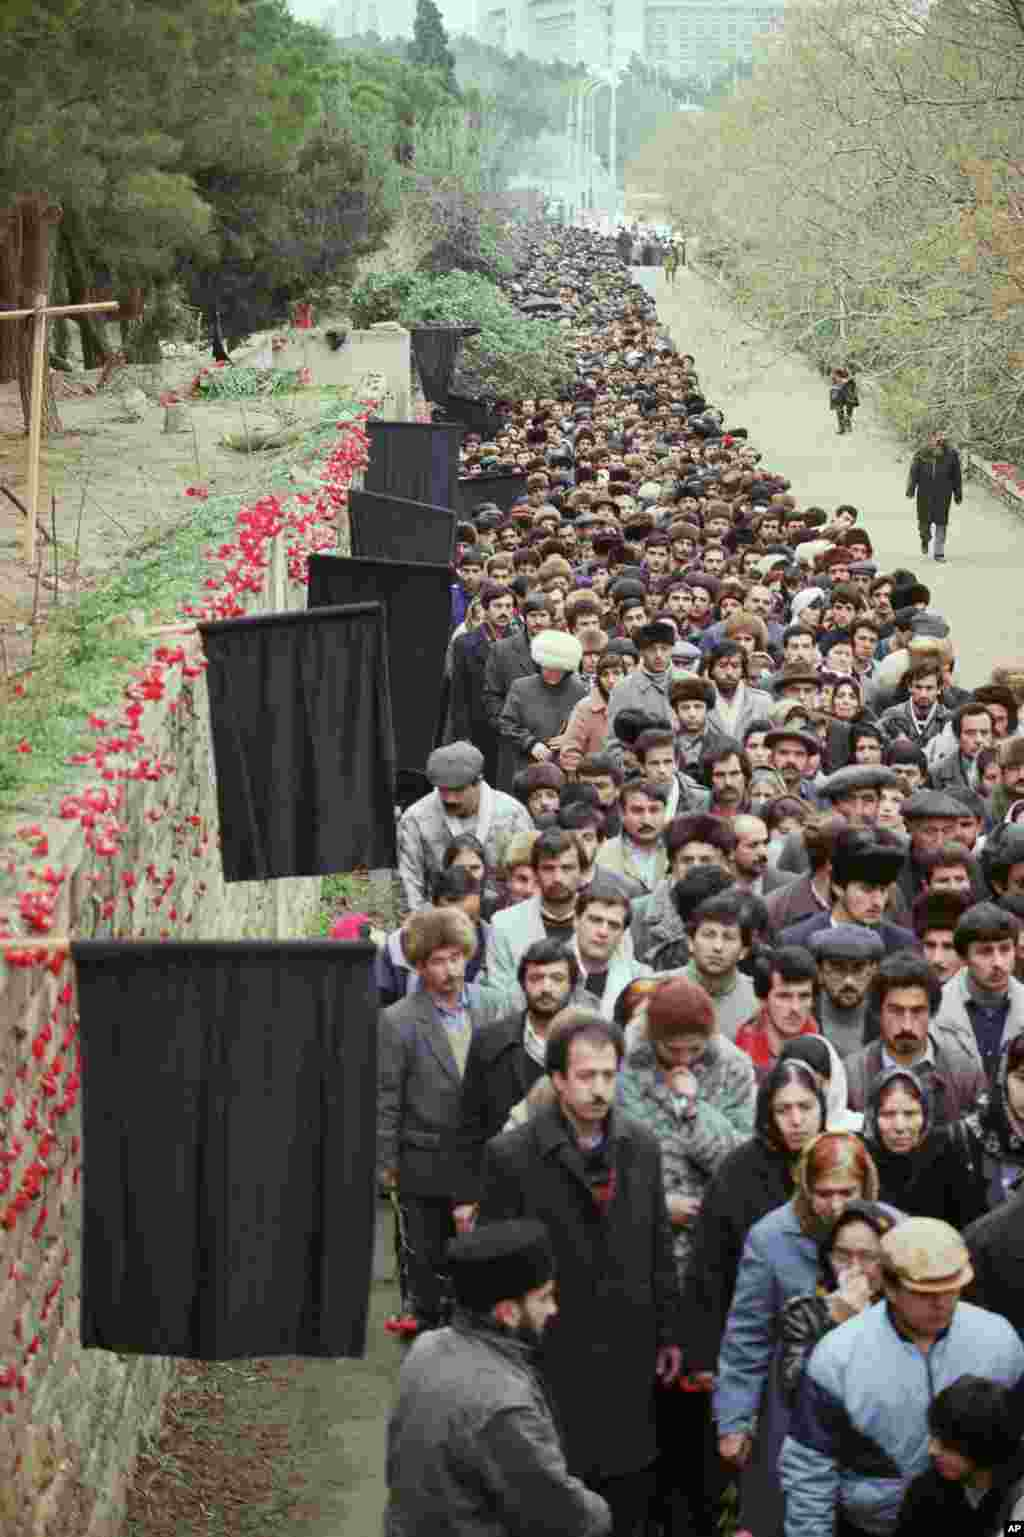 Thousands of mourners walk past graves dug in a Baku park on February 3, 1990. Twenty months later, on October 18, 1991, Azerbaijan declared independence.